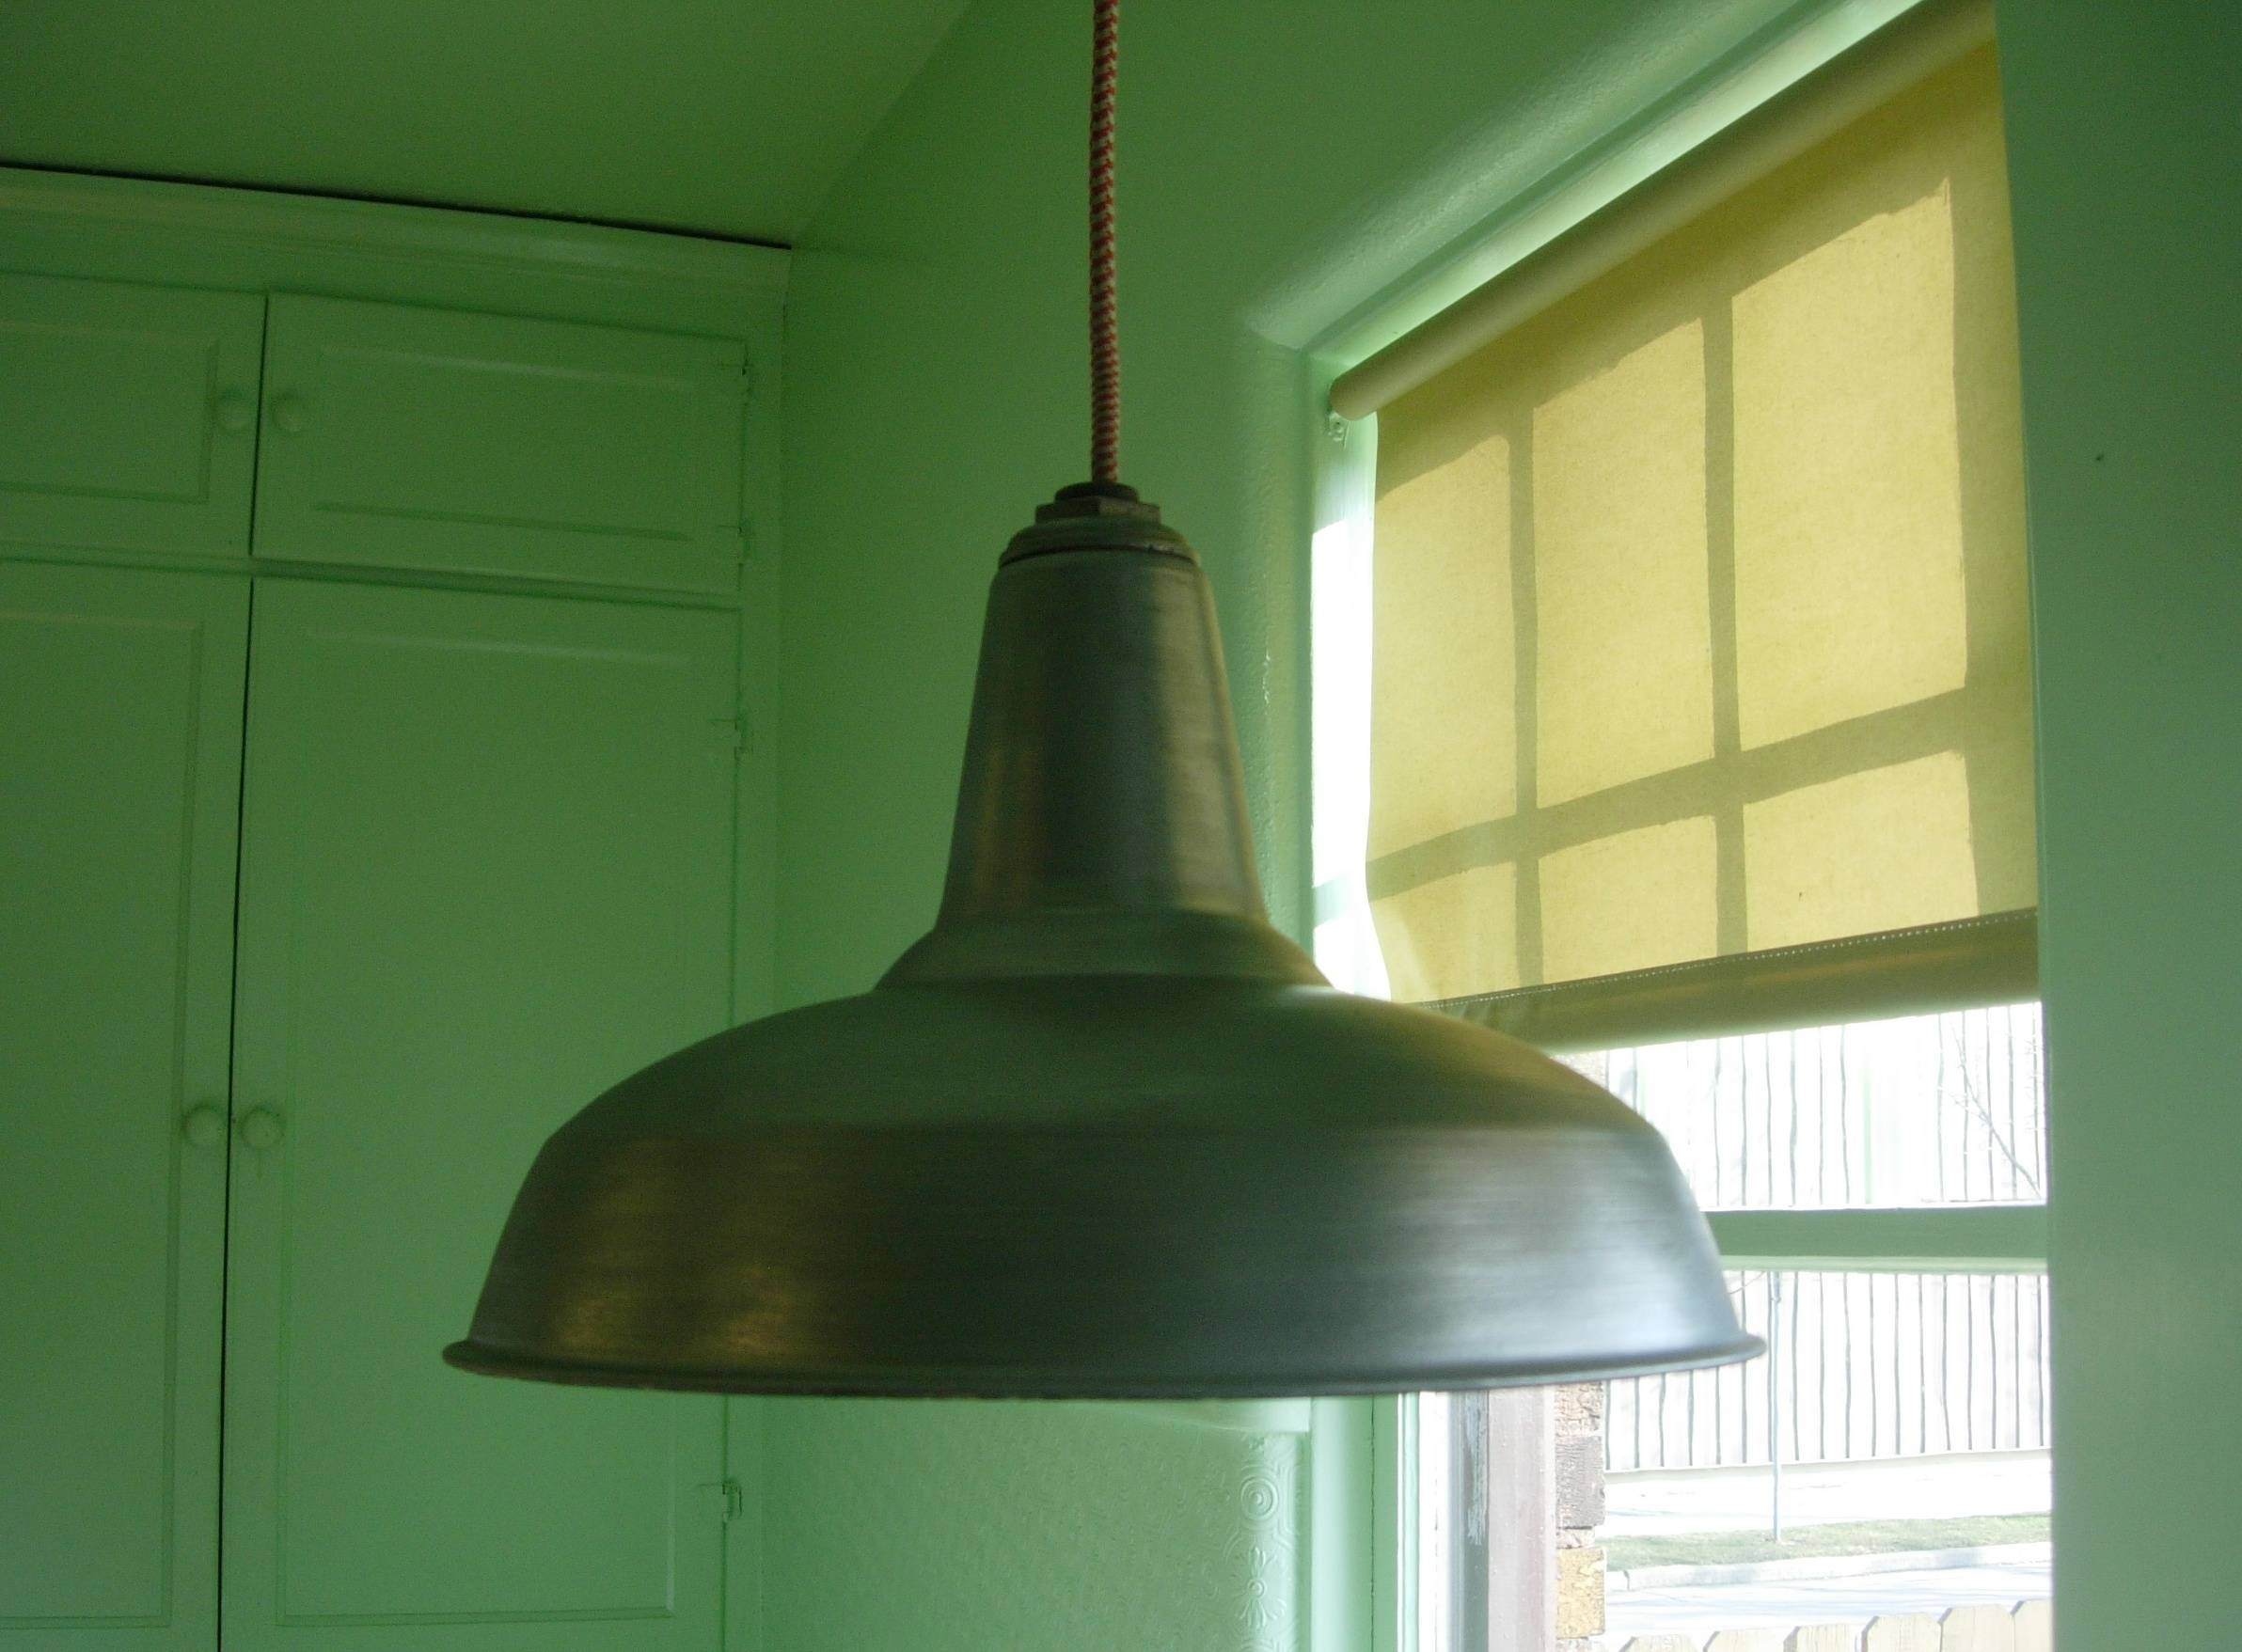 Barn Pendant Light Fixtures – Baby Exit Intended For Barn Pendant Lights (View 12 of 15)